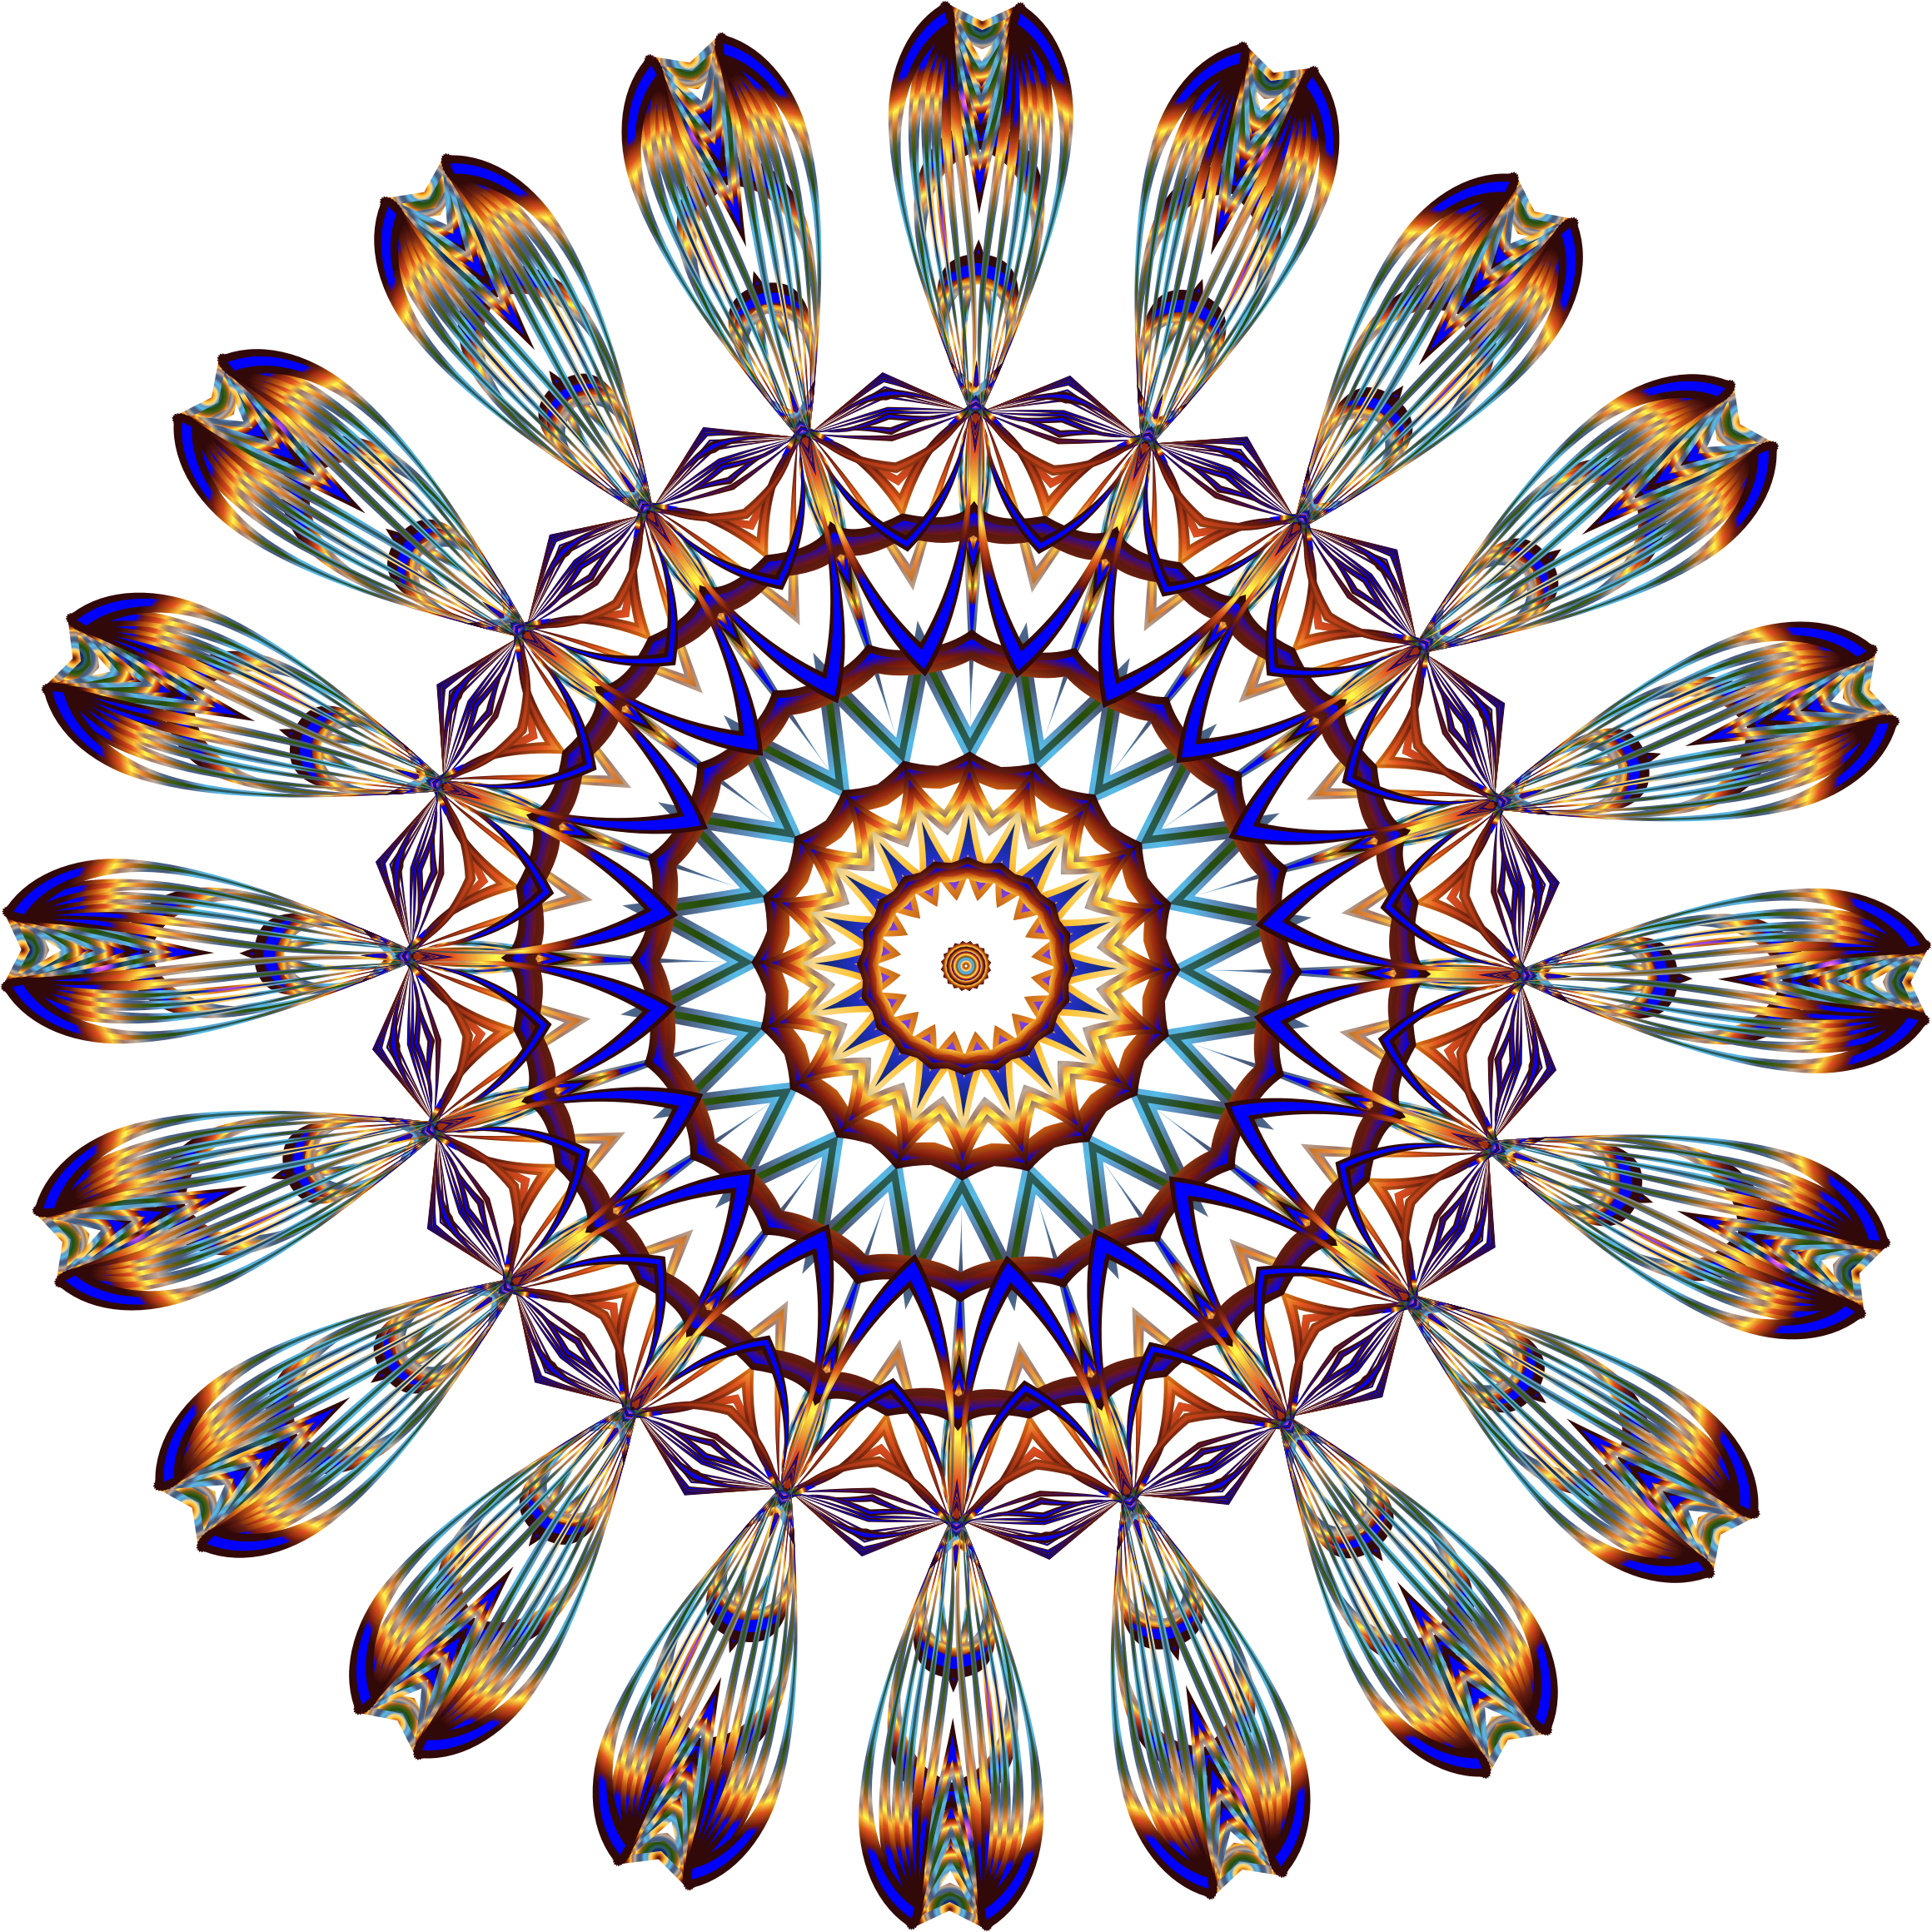 Prismatic Mandala Line Art 3 No Background by GDJ